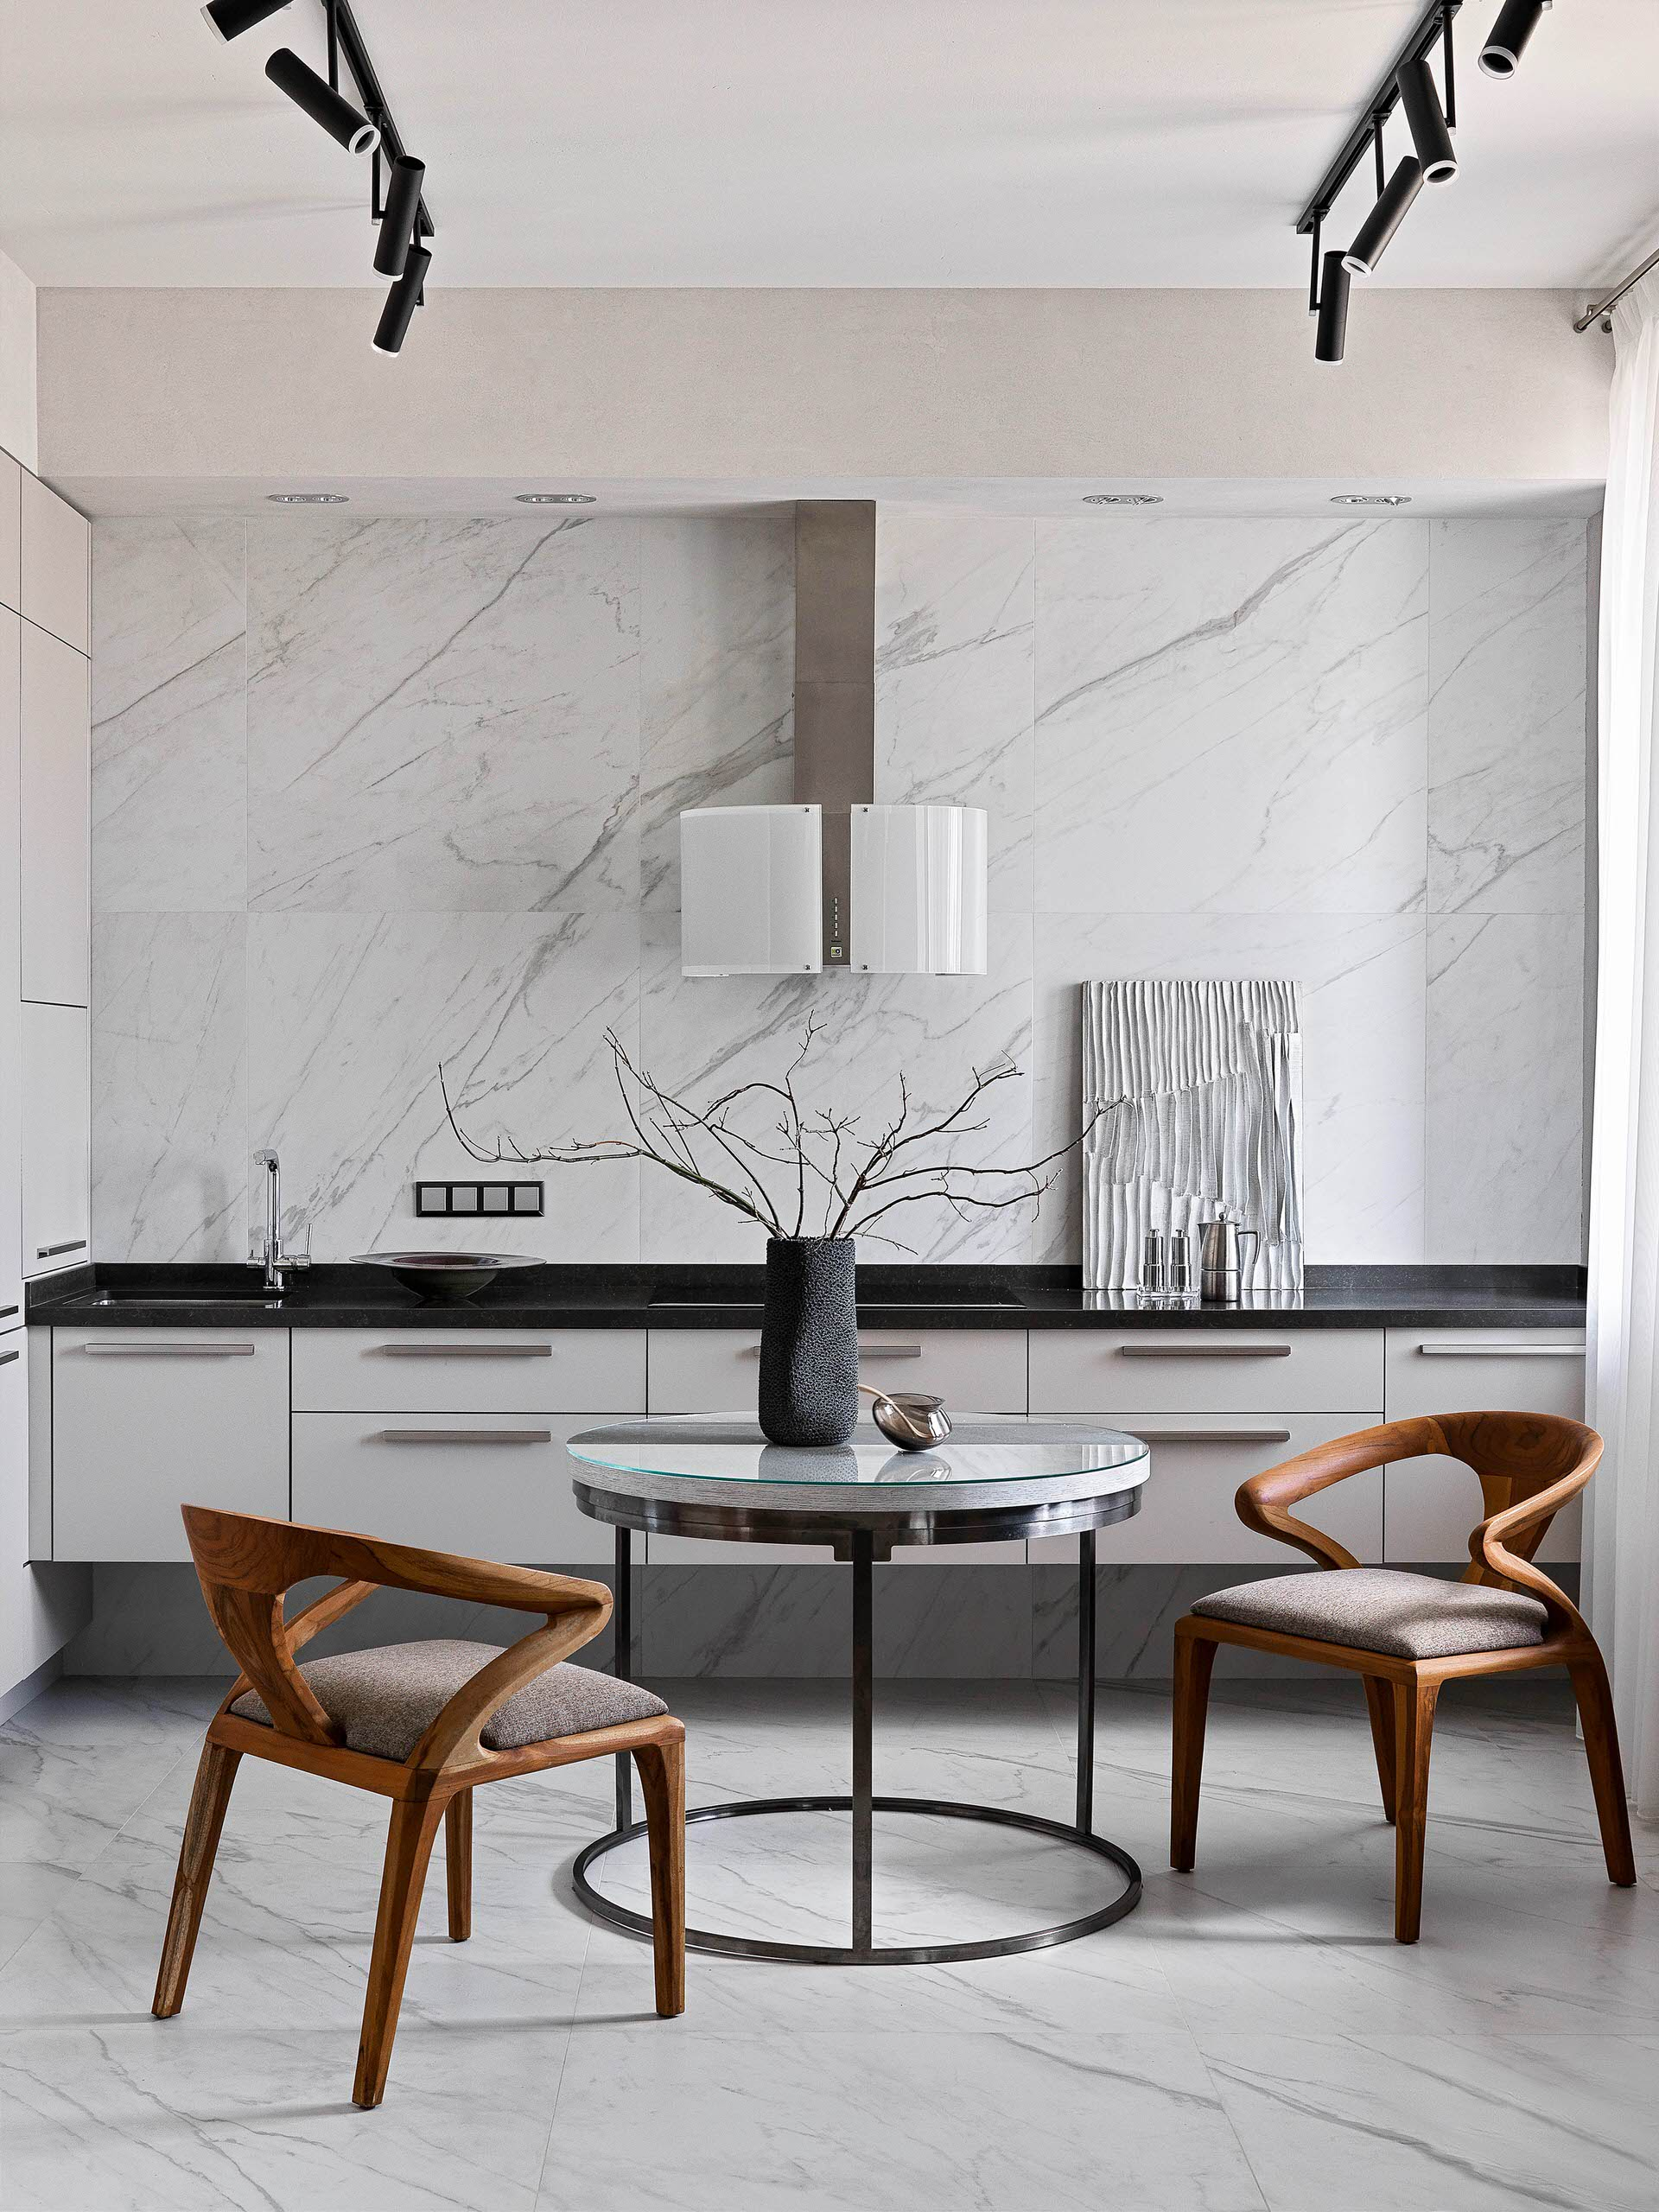 75 Beautiful Kitchen With Black Countertops Pictures Ideas January 2021 Houzz